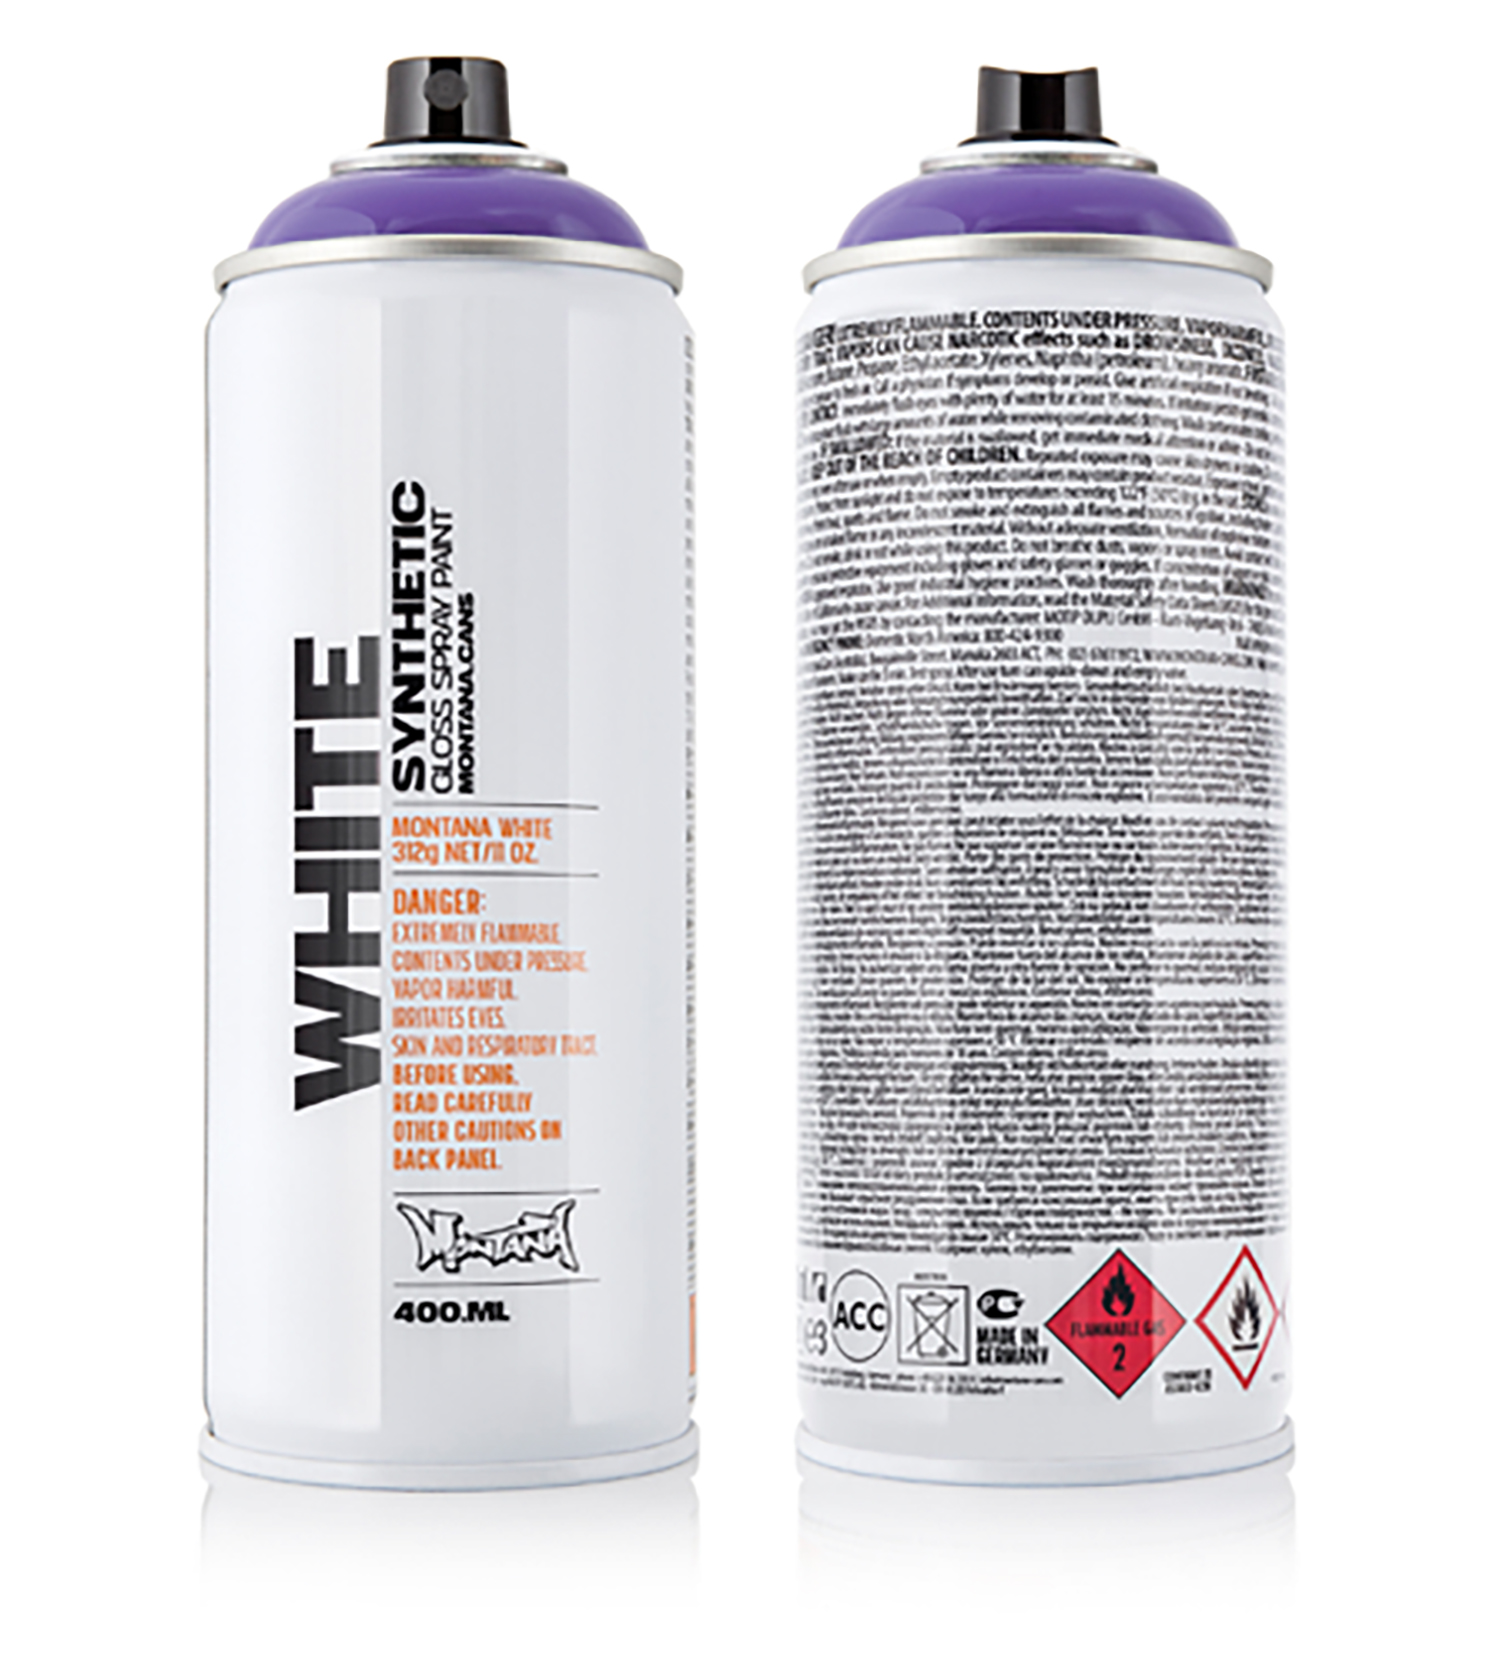 MONTANA-WHITE-SPRAY-400ML-4140